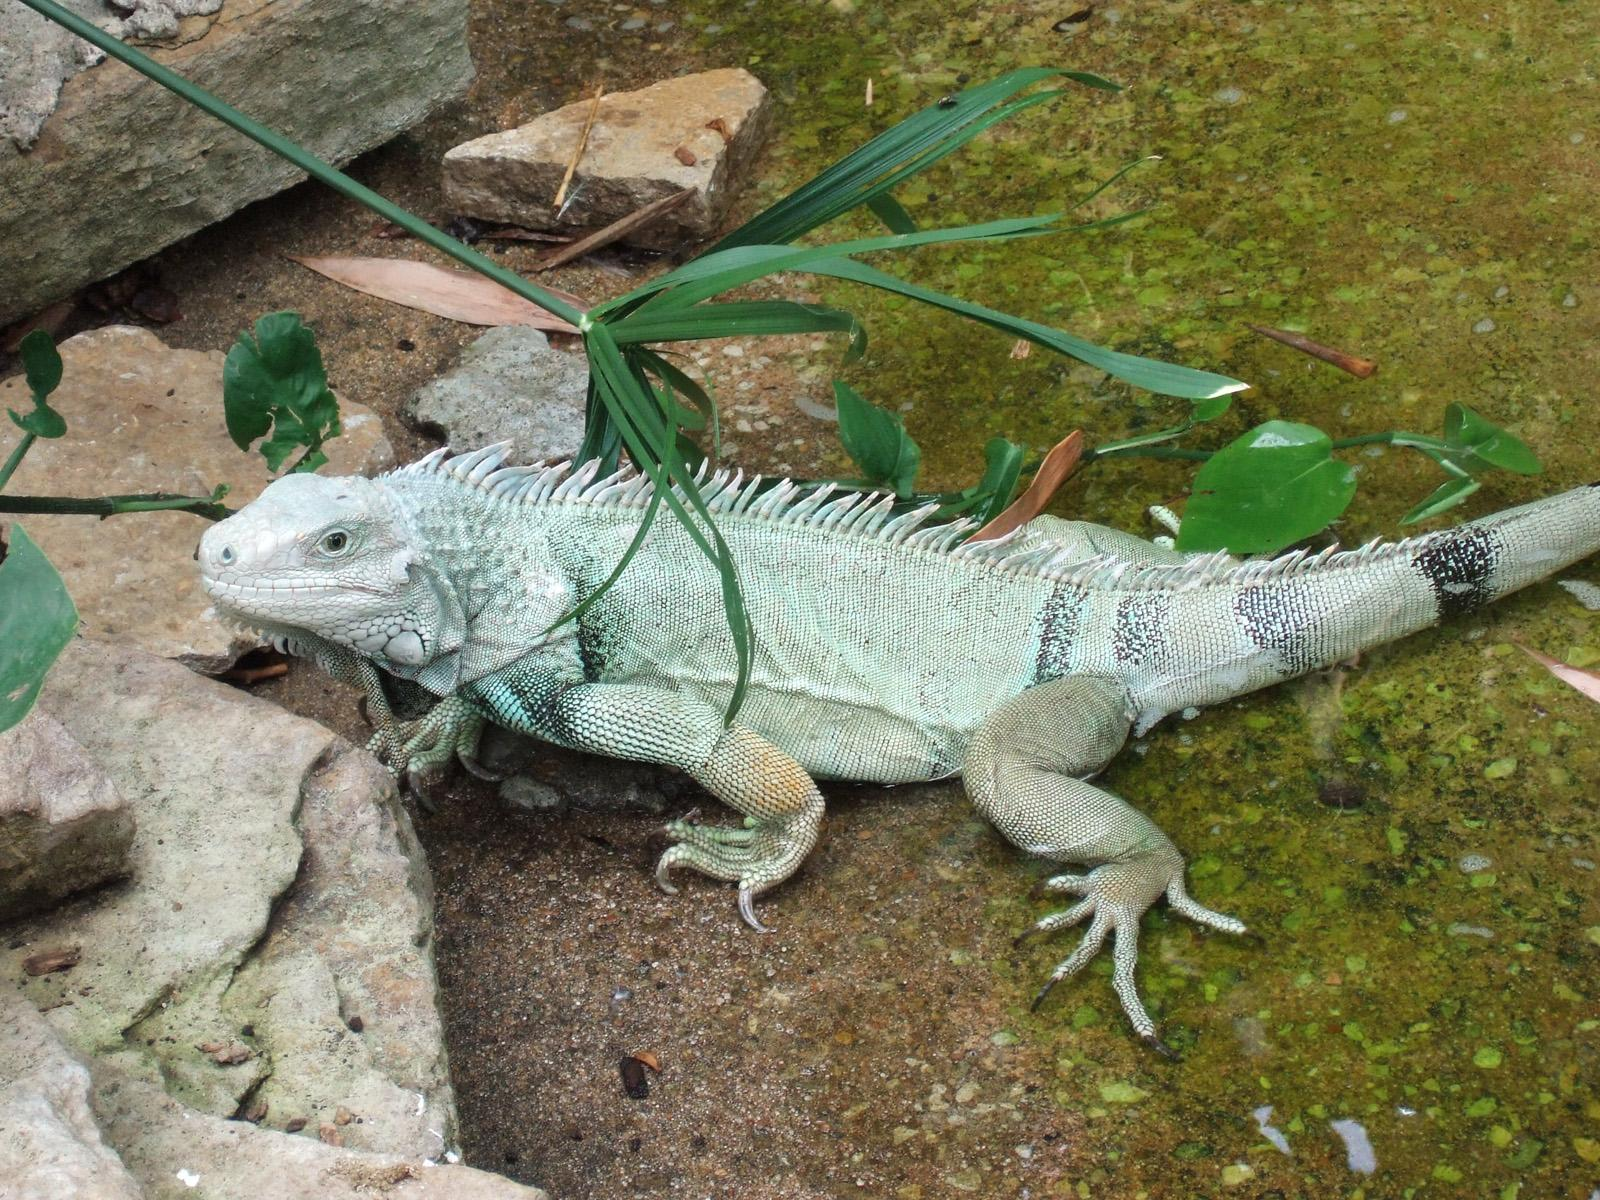 Iguanas wallpapers